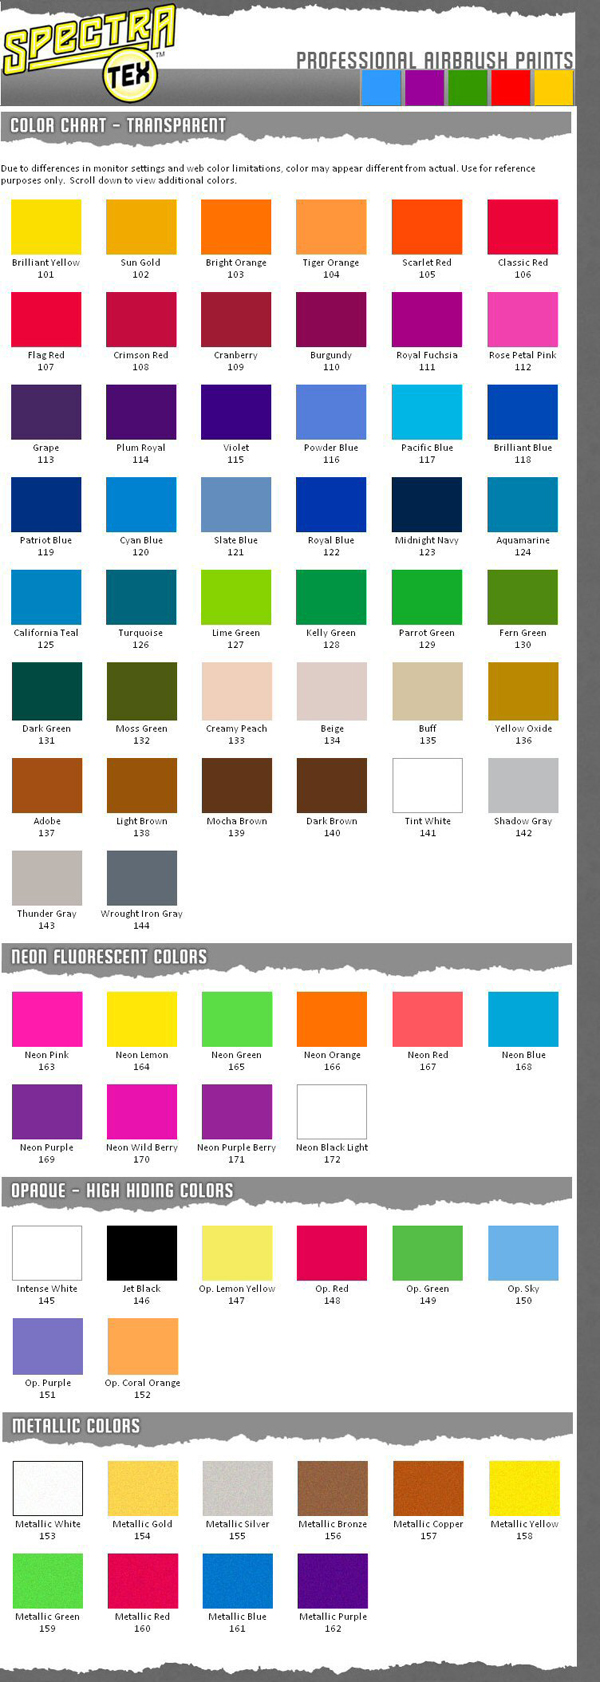 Spectra Tex Colour chart